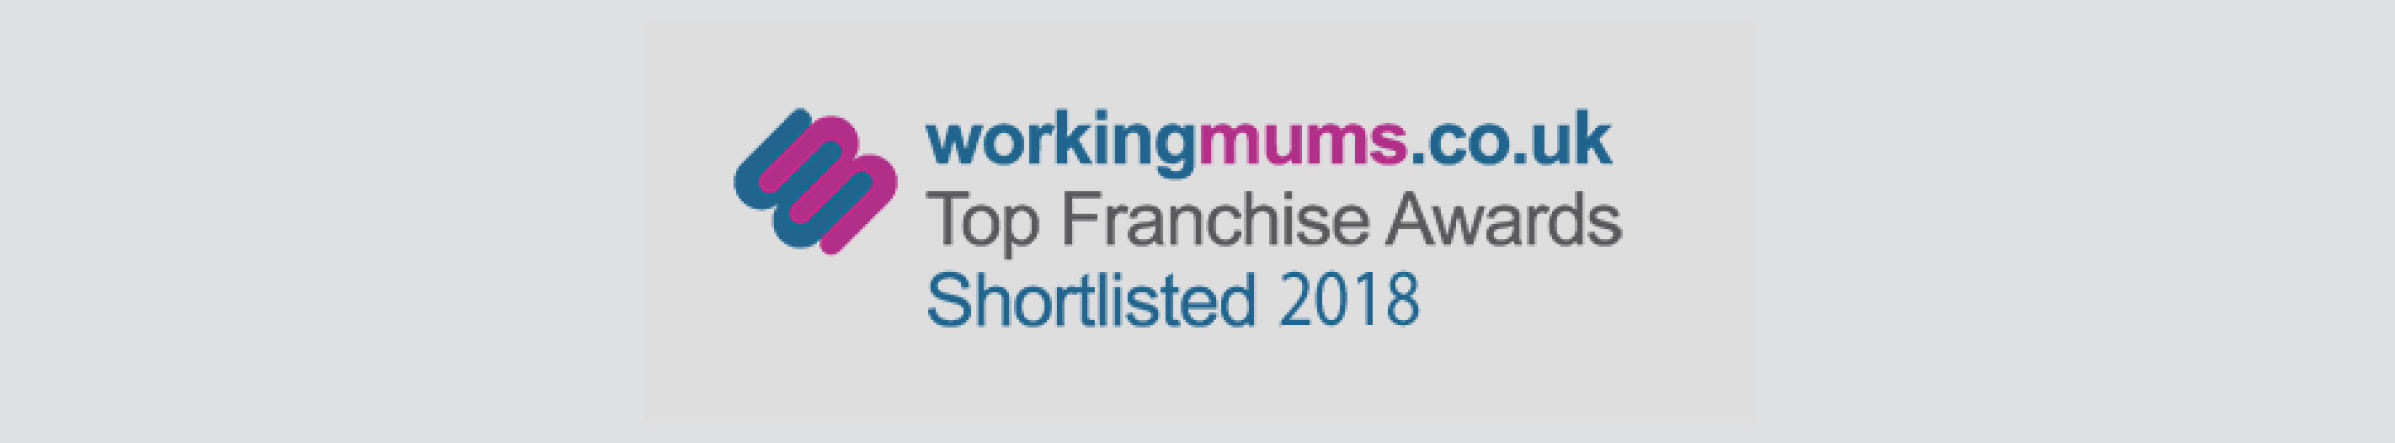 Pyjama Drama shortlisted for Working Mums franchise awards 2018